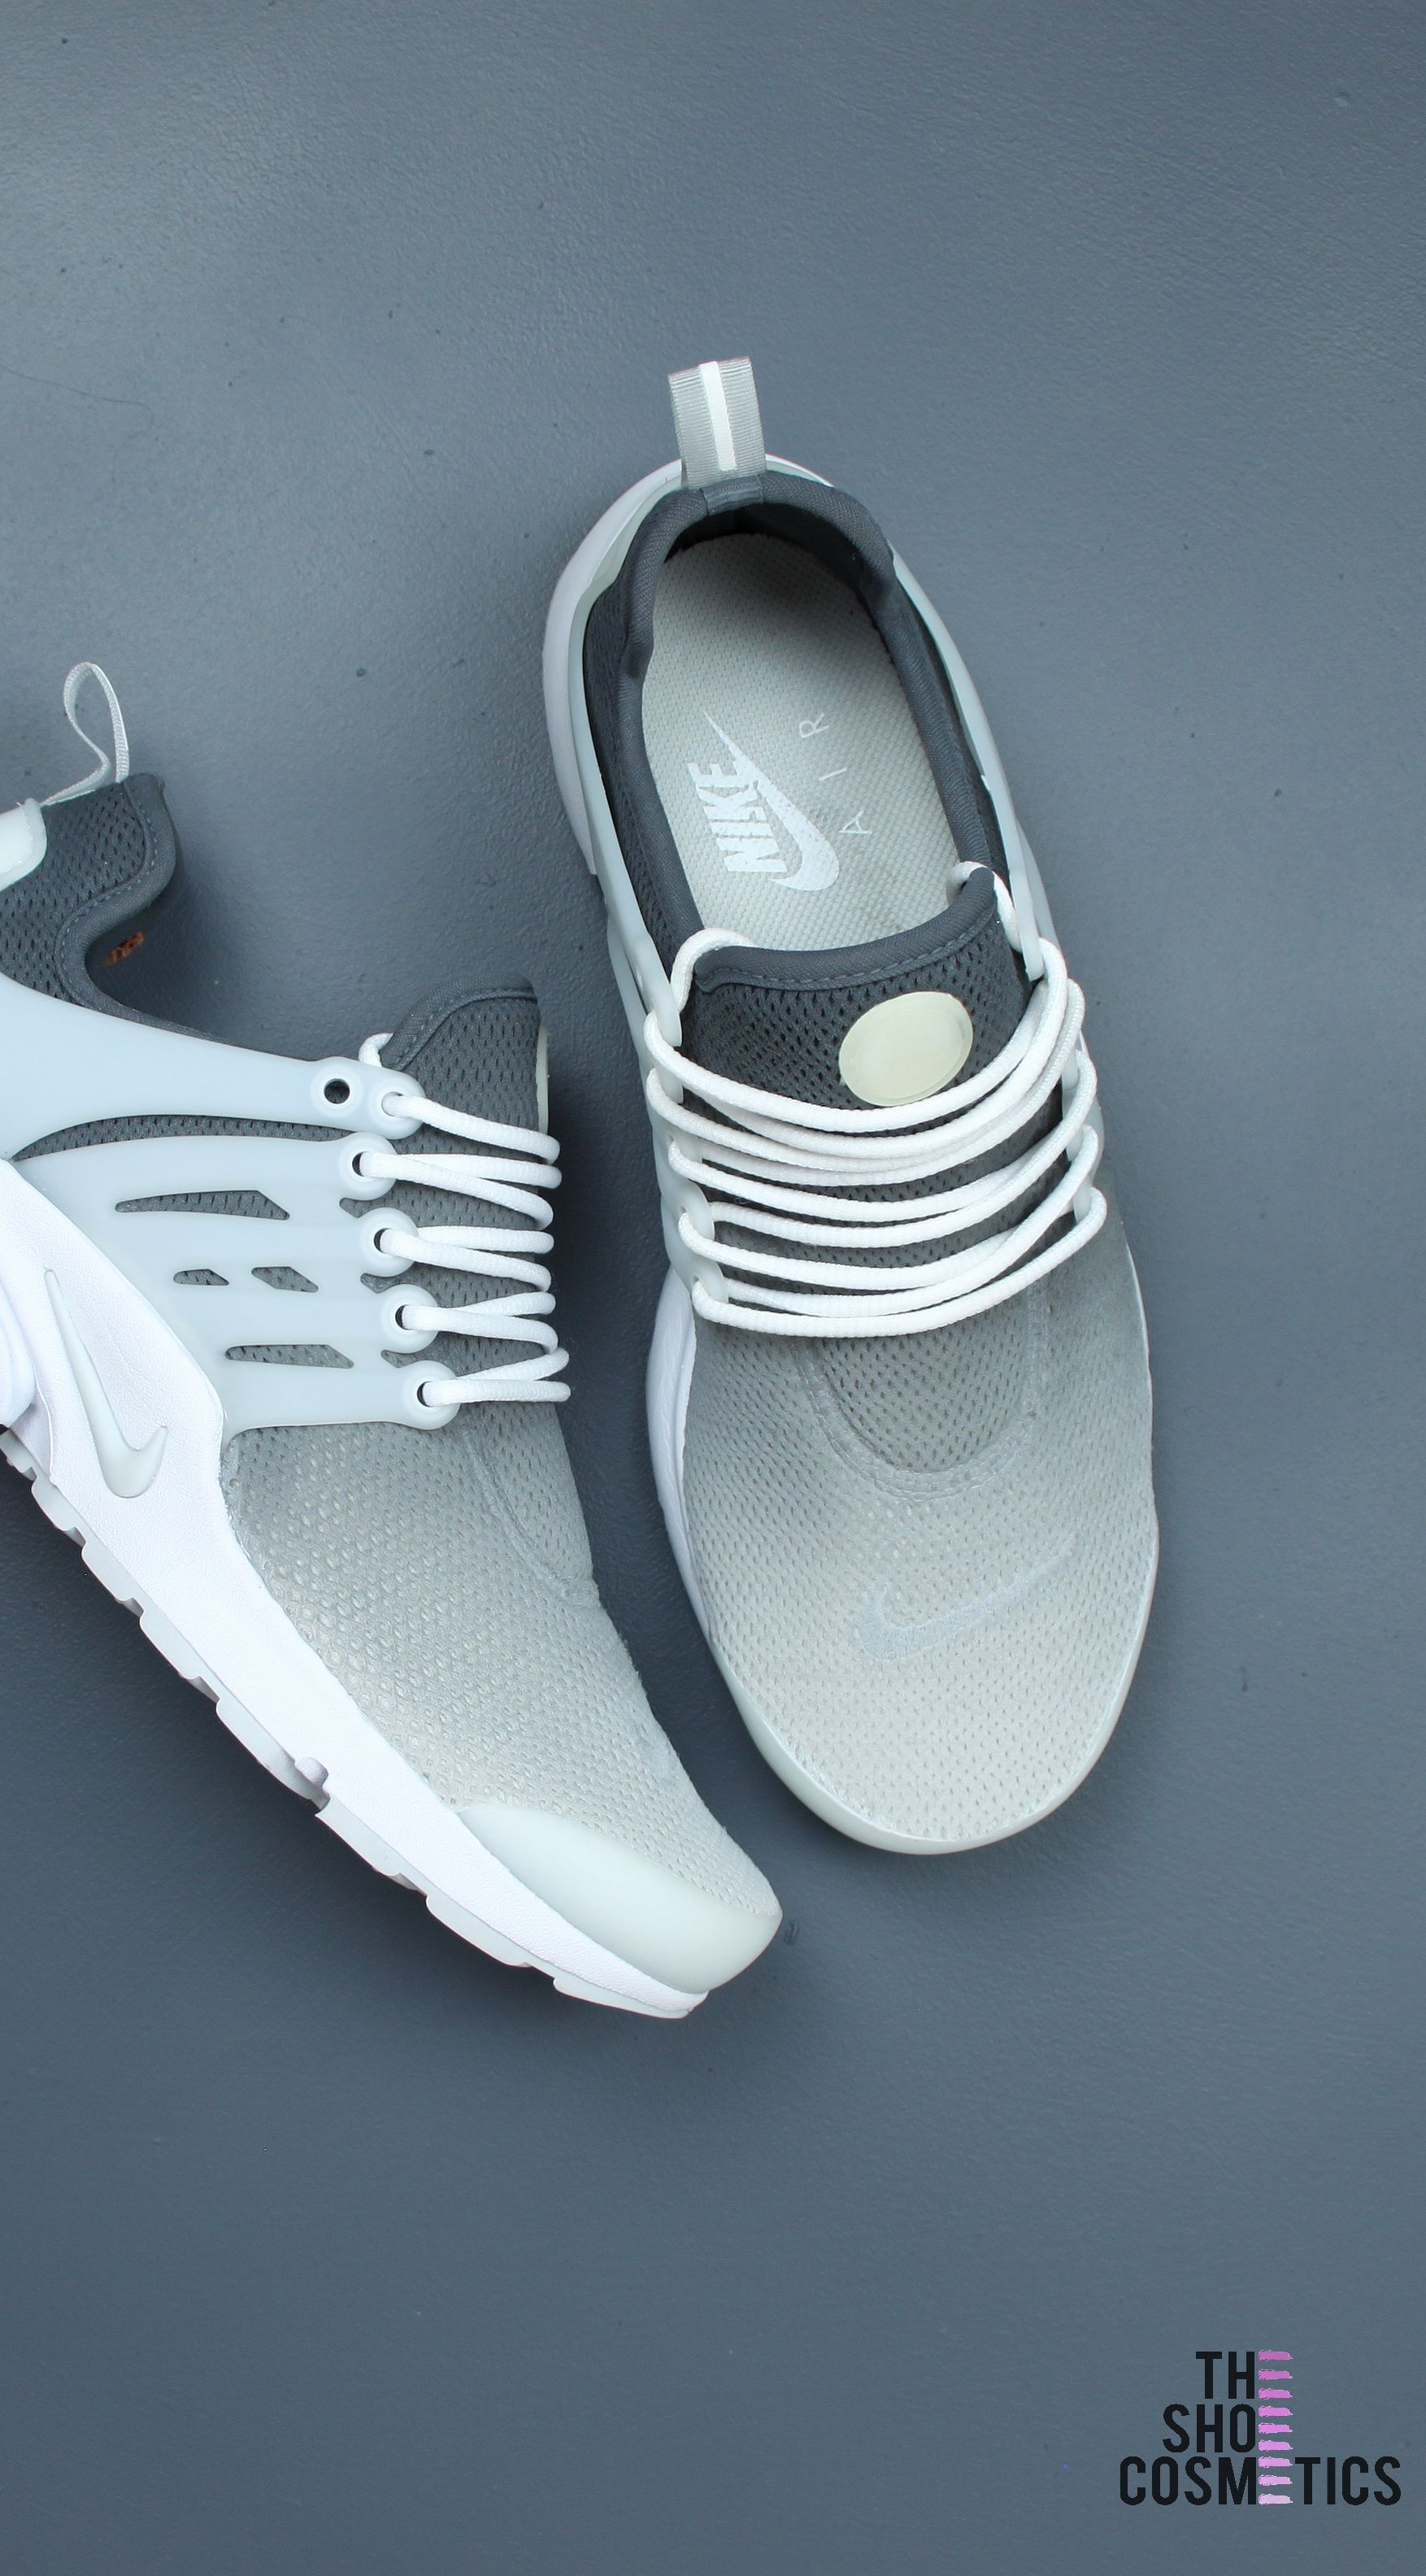 Looking for grey Nike shoes  Explore our ombre custom grey Nike air presto  women s trainers. b948d7d871e02